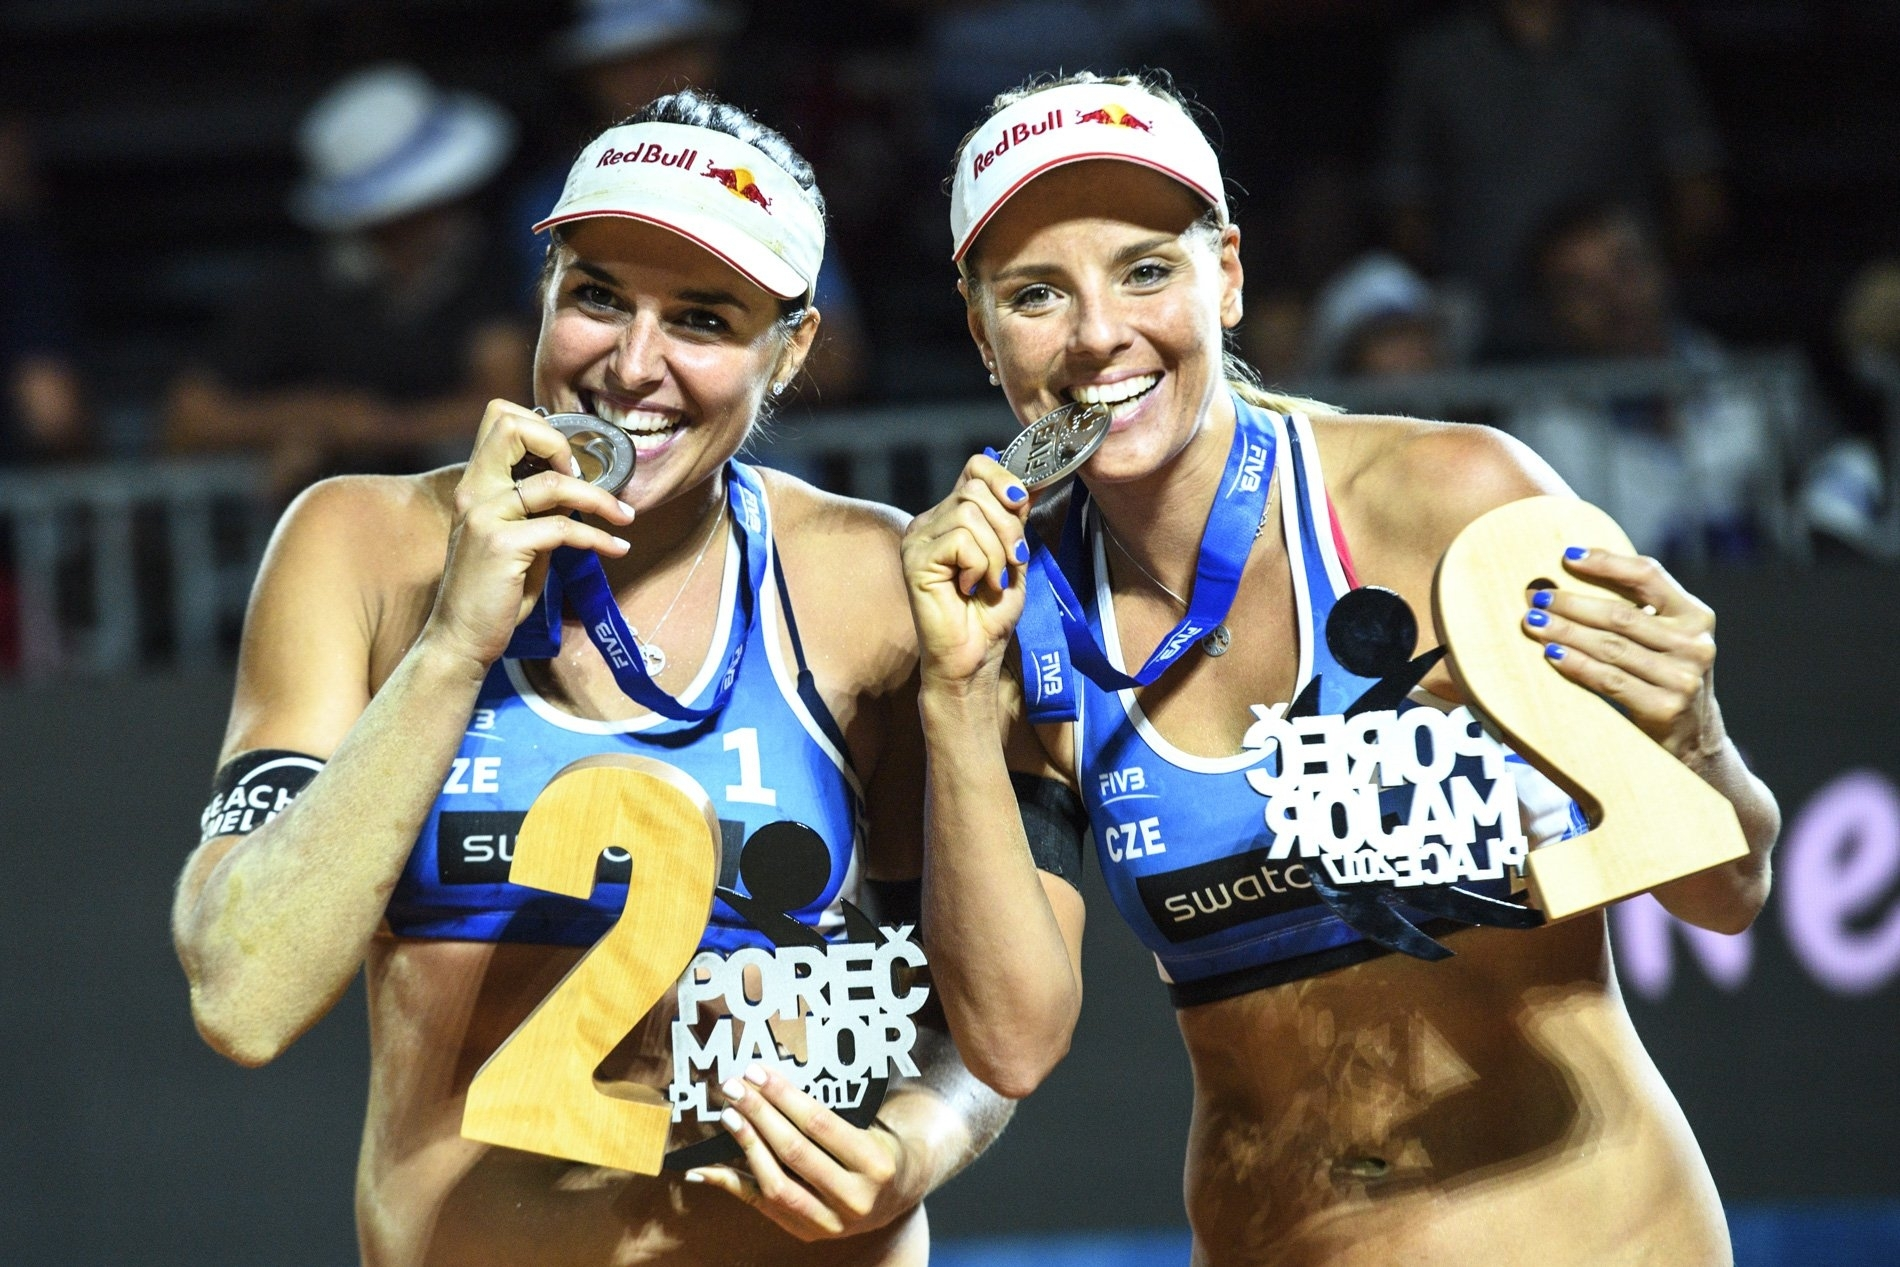 Barbora and Marketa won silver in Croatia at the Poreč Major